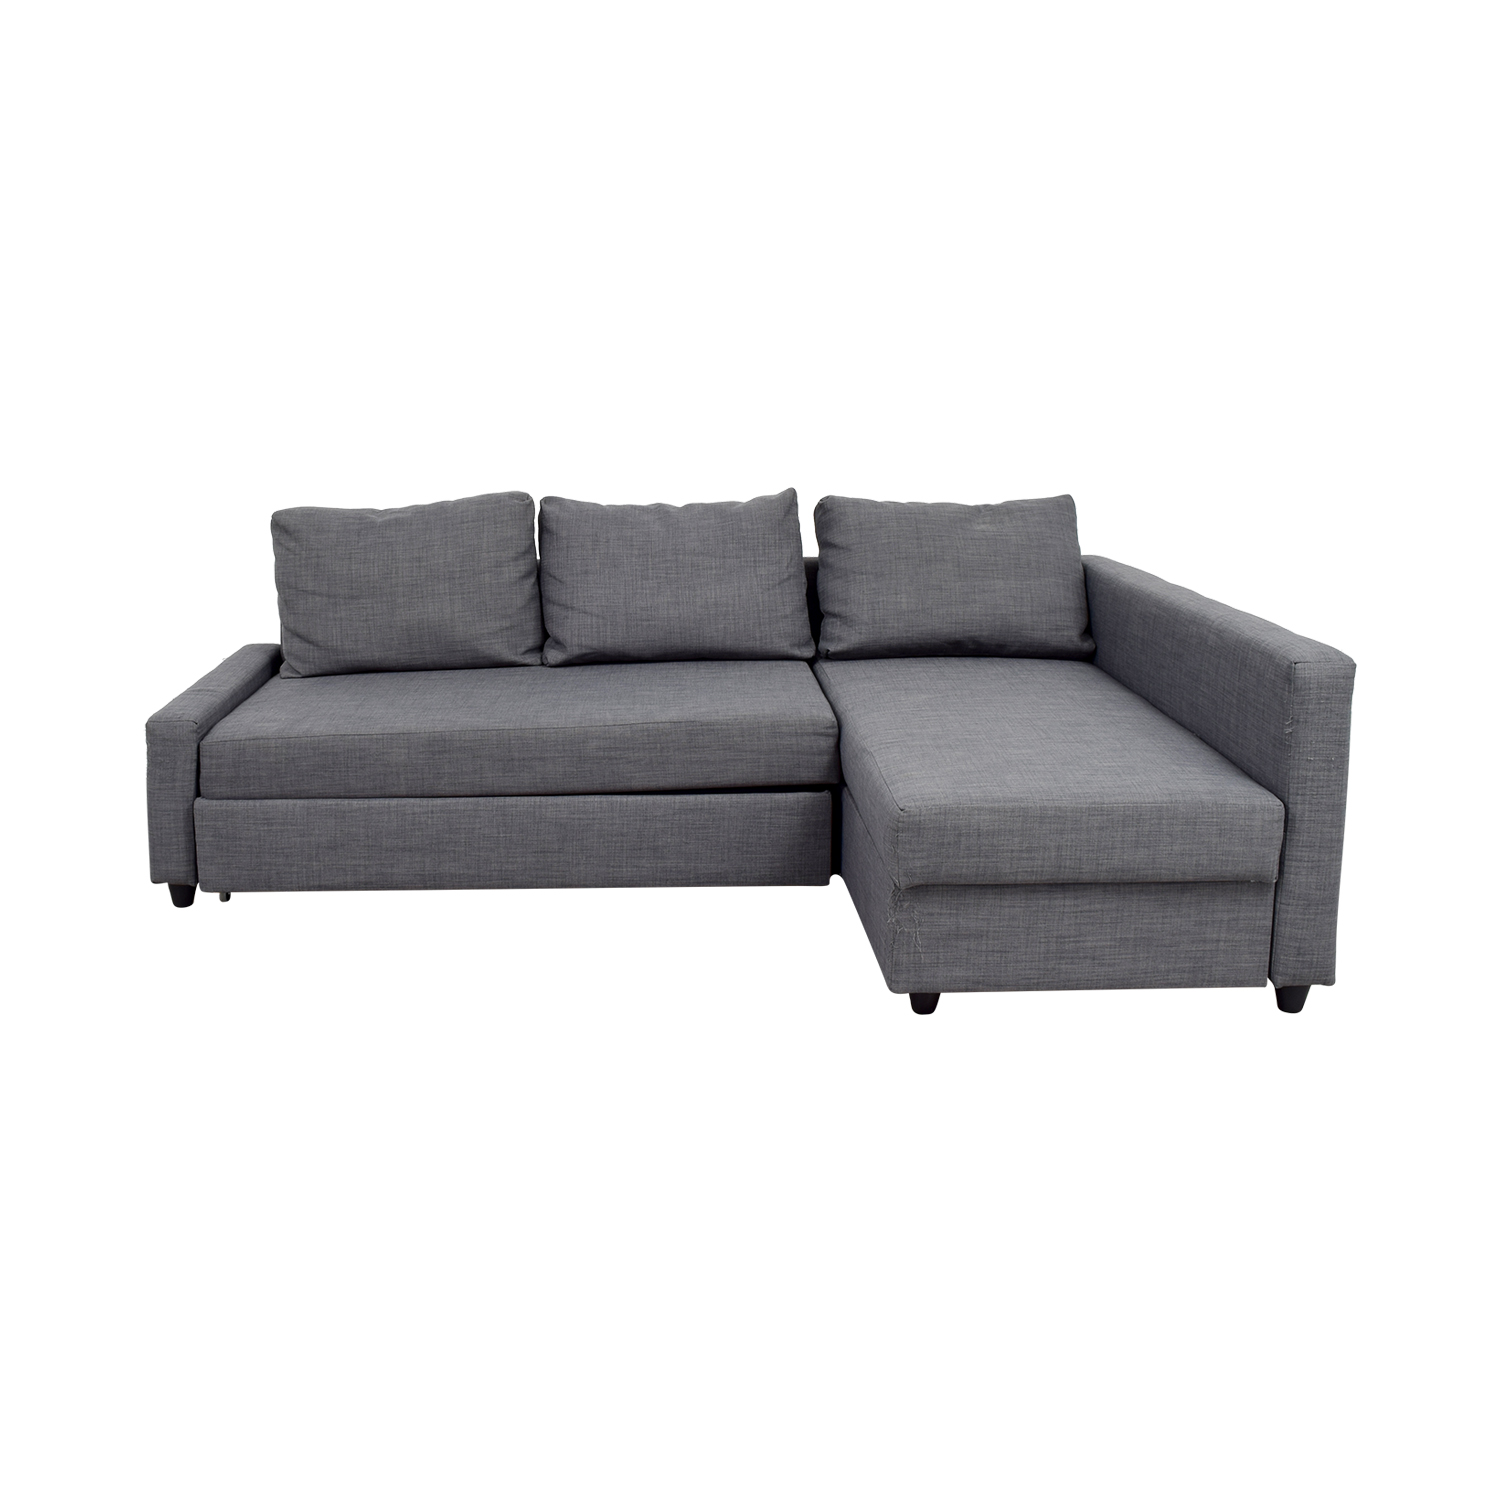 buy IKEA Grey Sleeper Chaise Sectional IKEA  sc 1 st  Furnishare : used sectional sofas for sale - Sectionals, Sofas & Couches